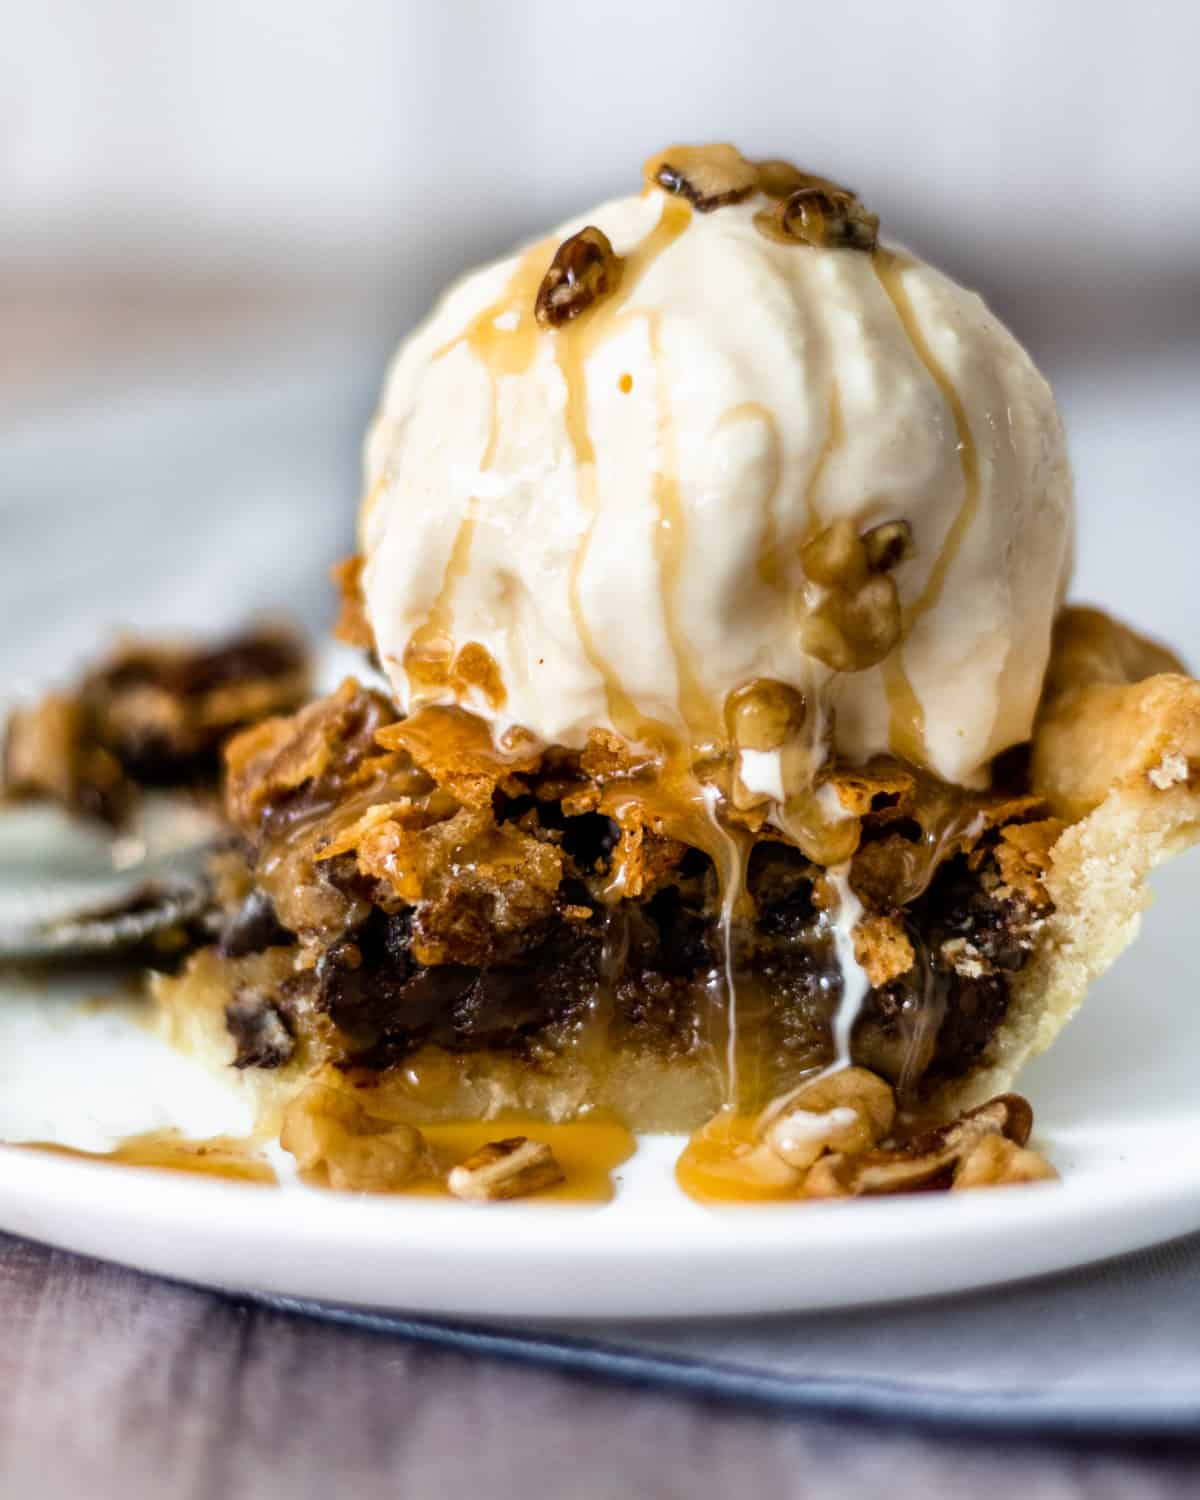 slice of chocolate walnut pecan pie with ice cream on top and caramel drizzled all over.